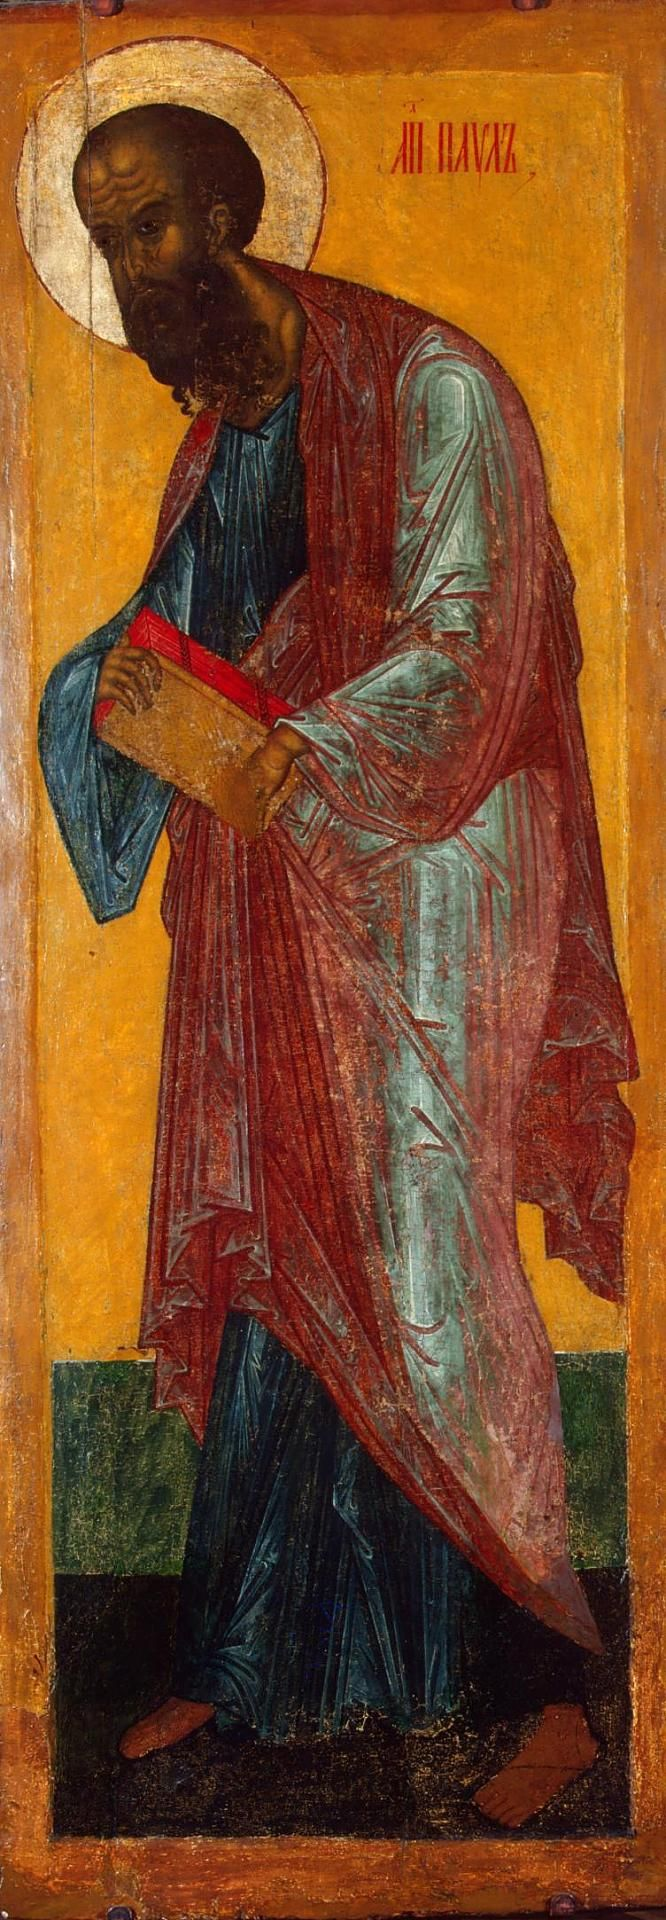 Icon: St Paul Russia, Late 15th - early 16th century The icon of St Paul comes from a Deisis Tier,